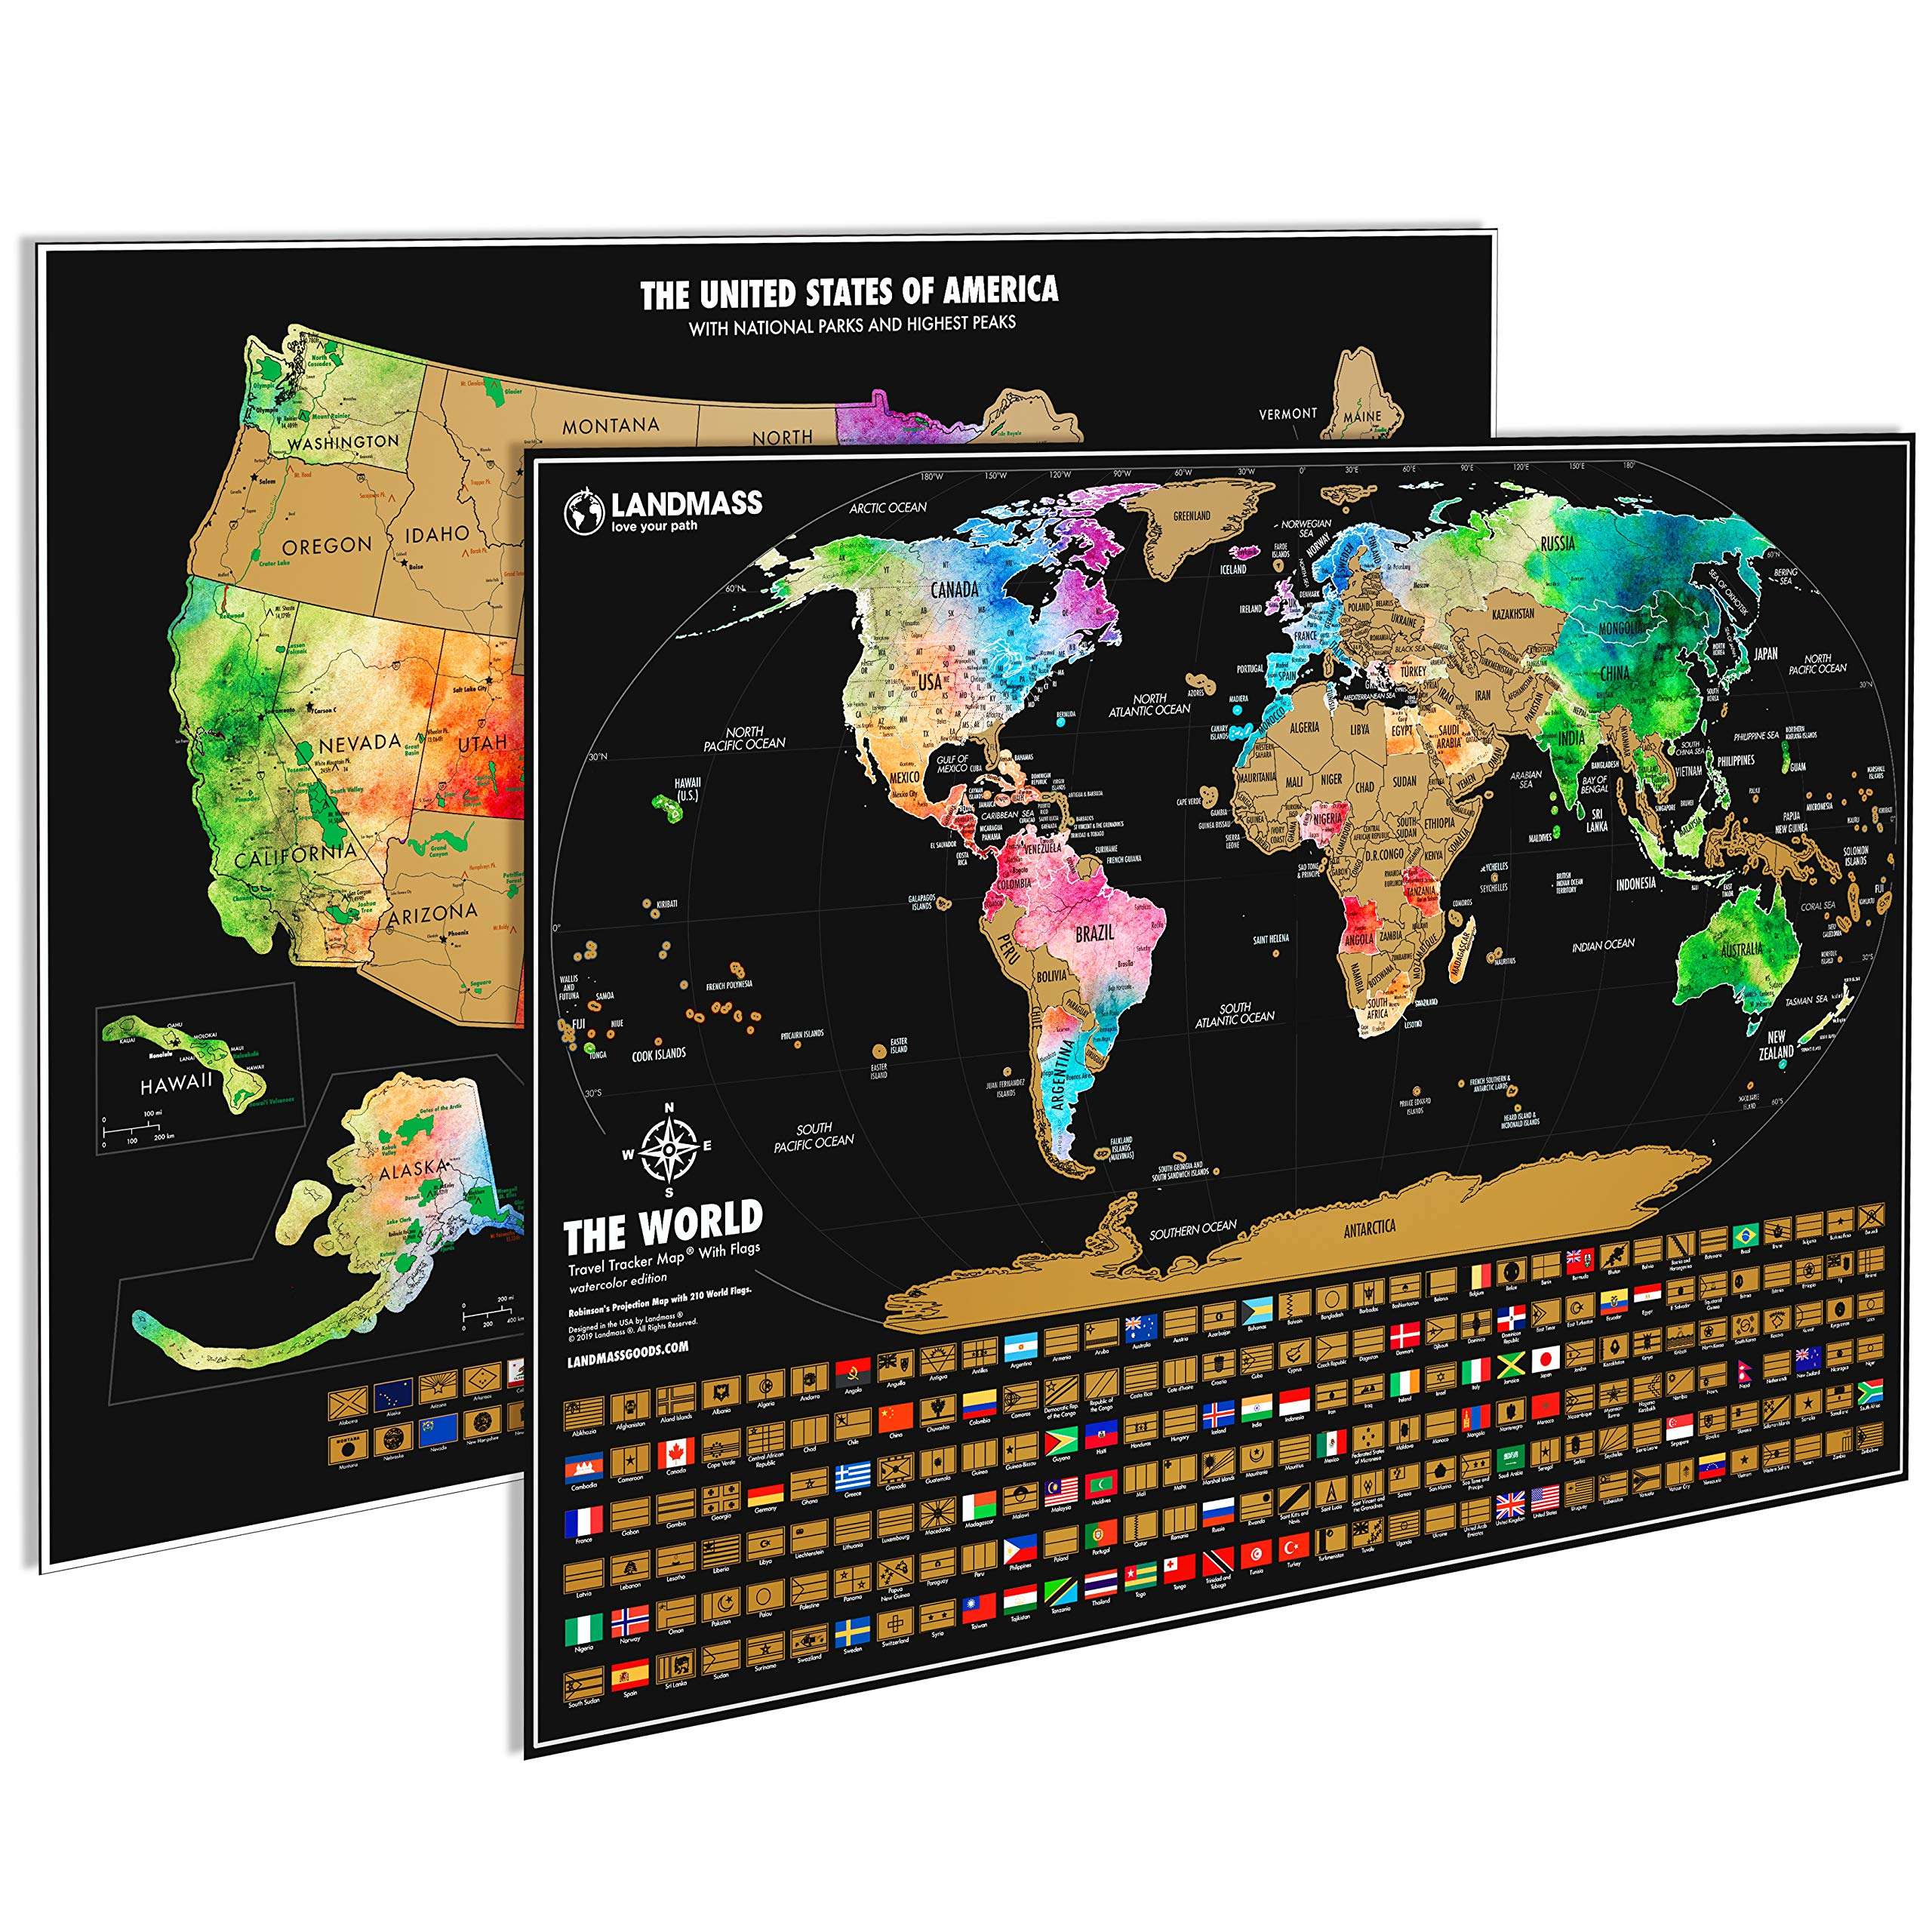 Landmass Scratch Off Map of The World Poster + Scratch Off Map of The United States - Two 24x17'' Travel Tracker Maps with Flags - Detailed Cartography - Excellent Gift for Travelers